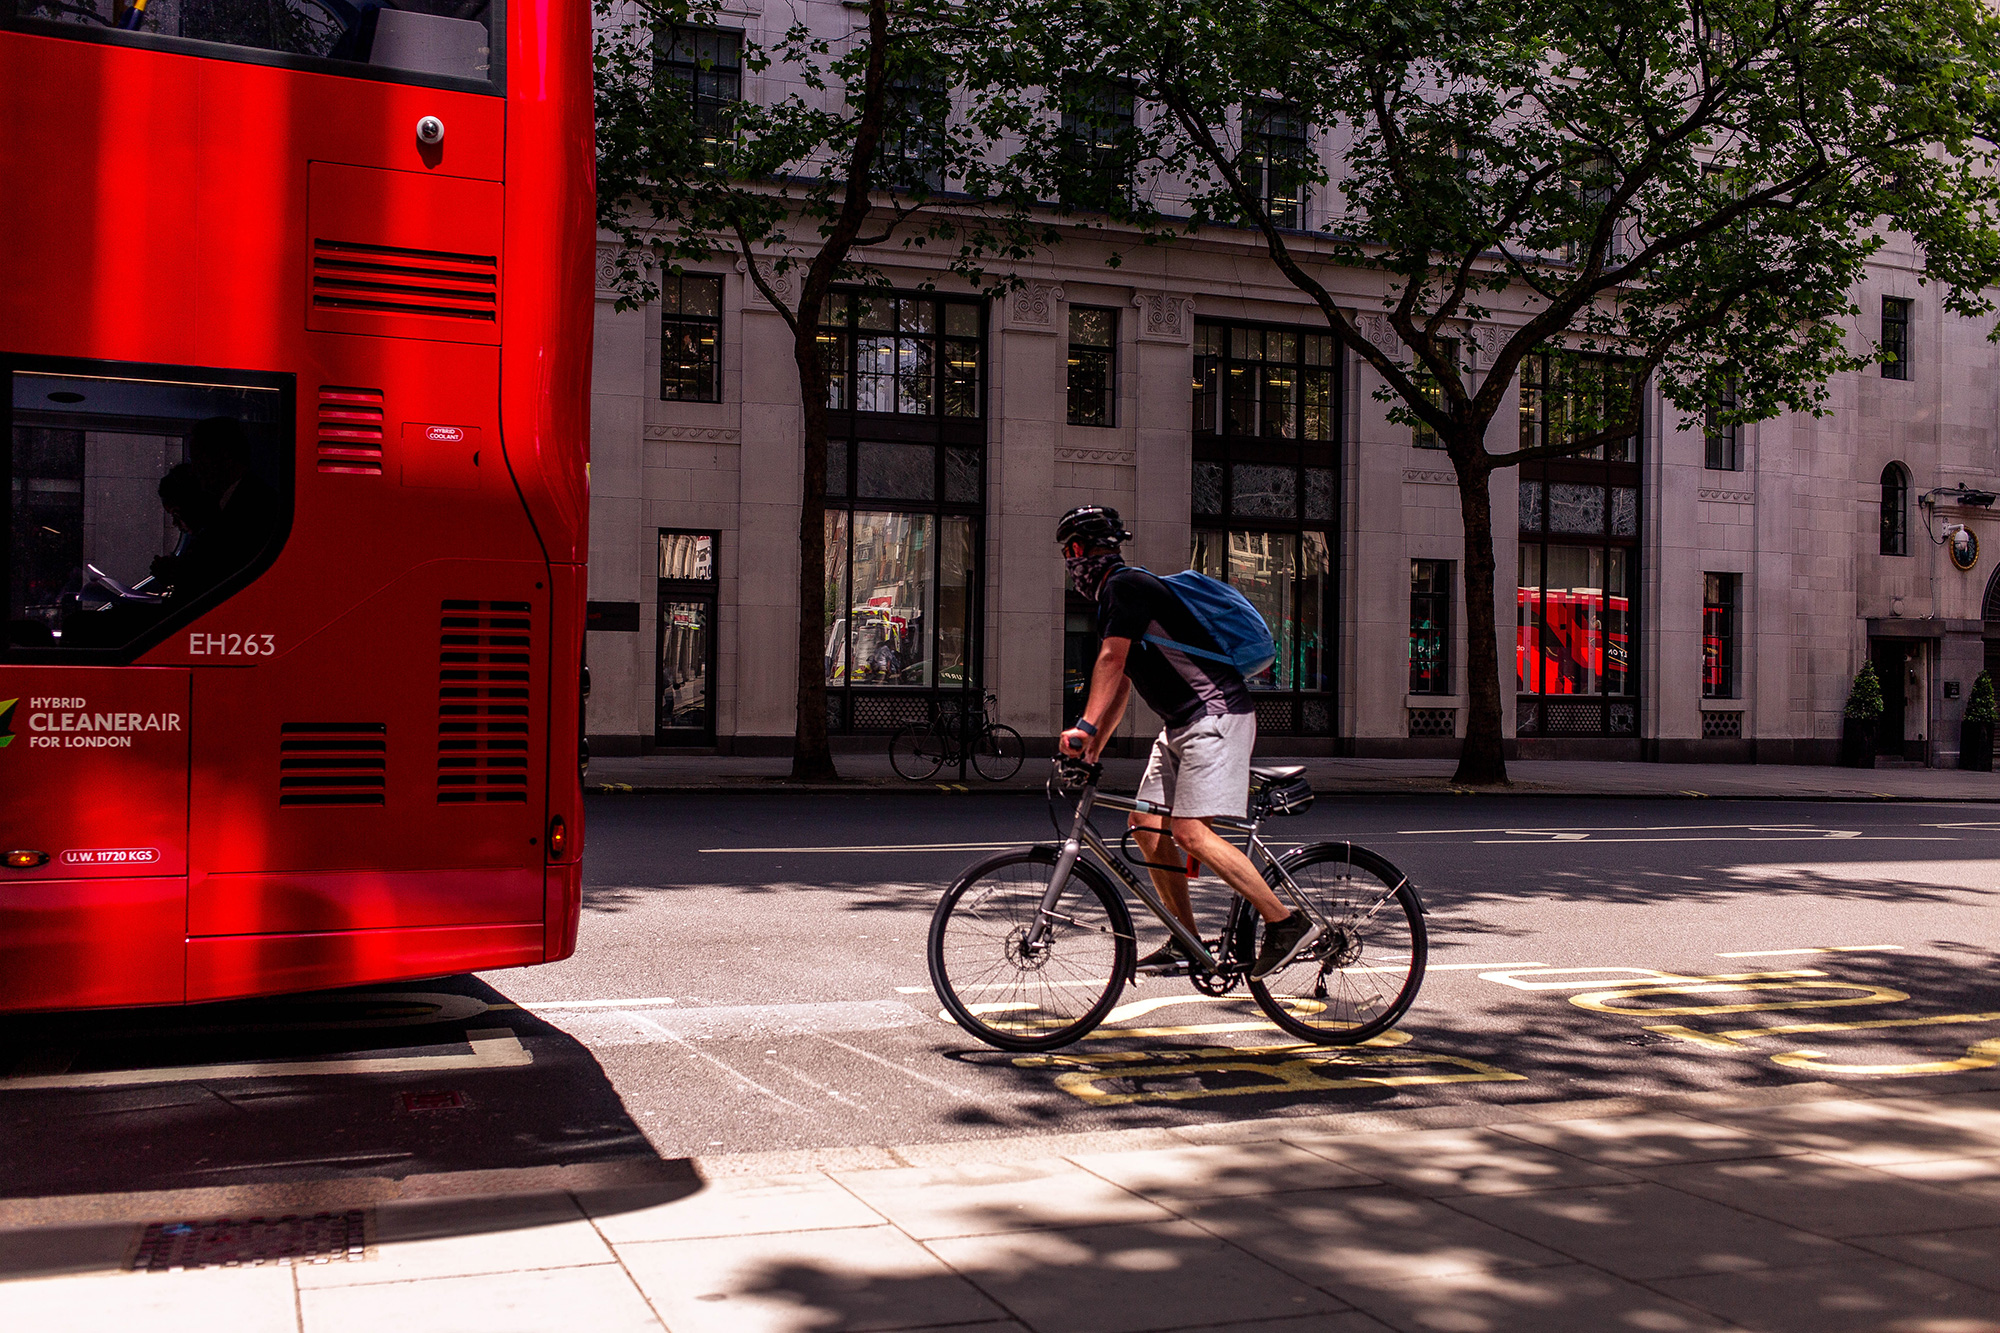 Cyclist riding behind a bus on a city street